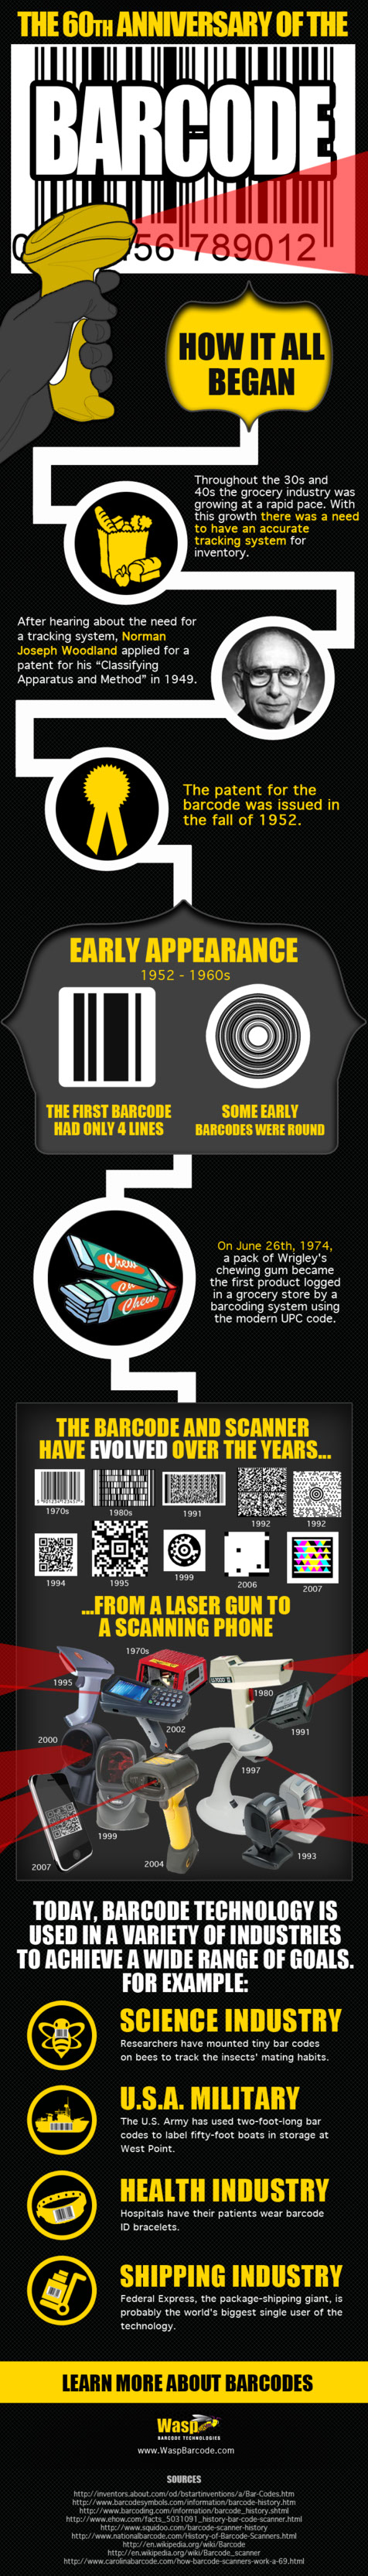 Barcode History-Infographic